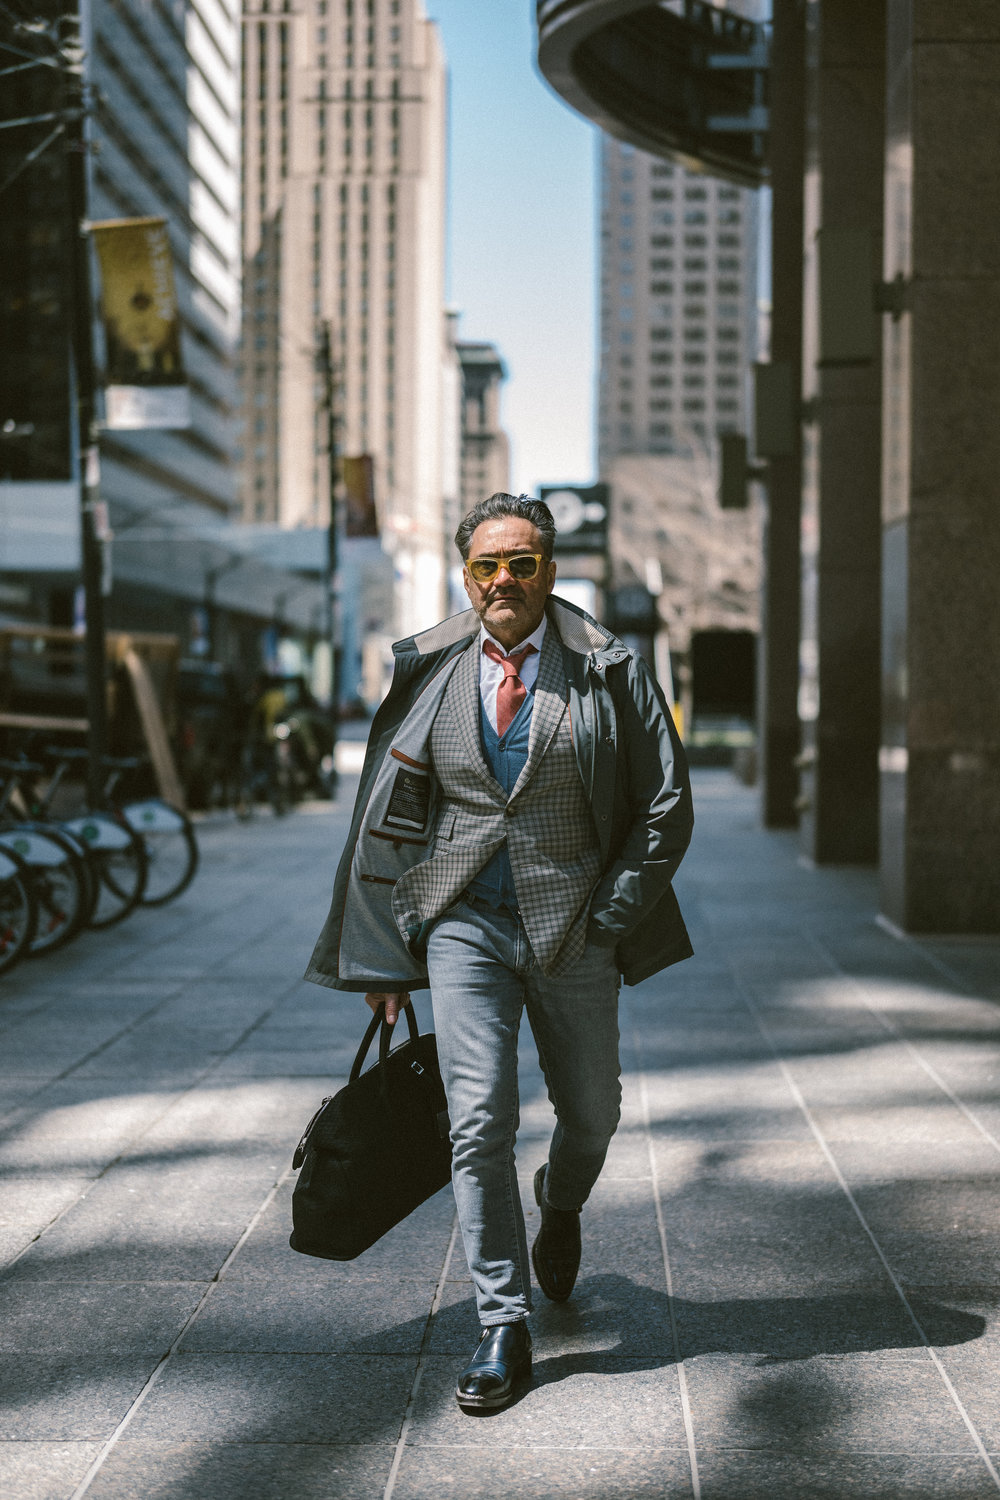 Our co-founder Santo in a Loro Piana 'Light Voyager' jacket.